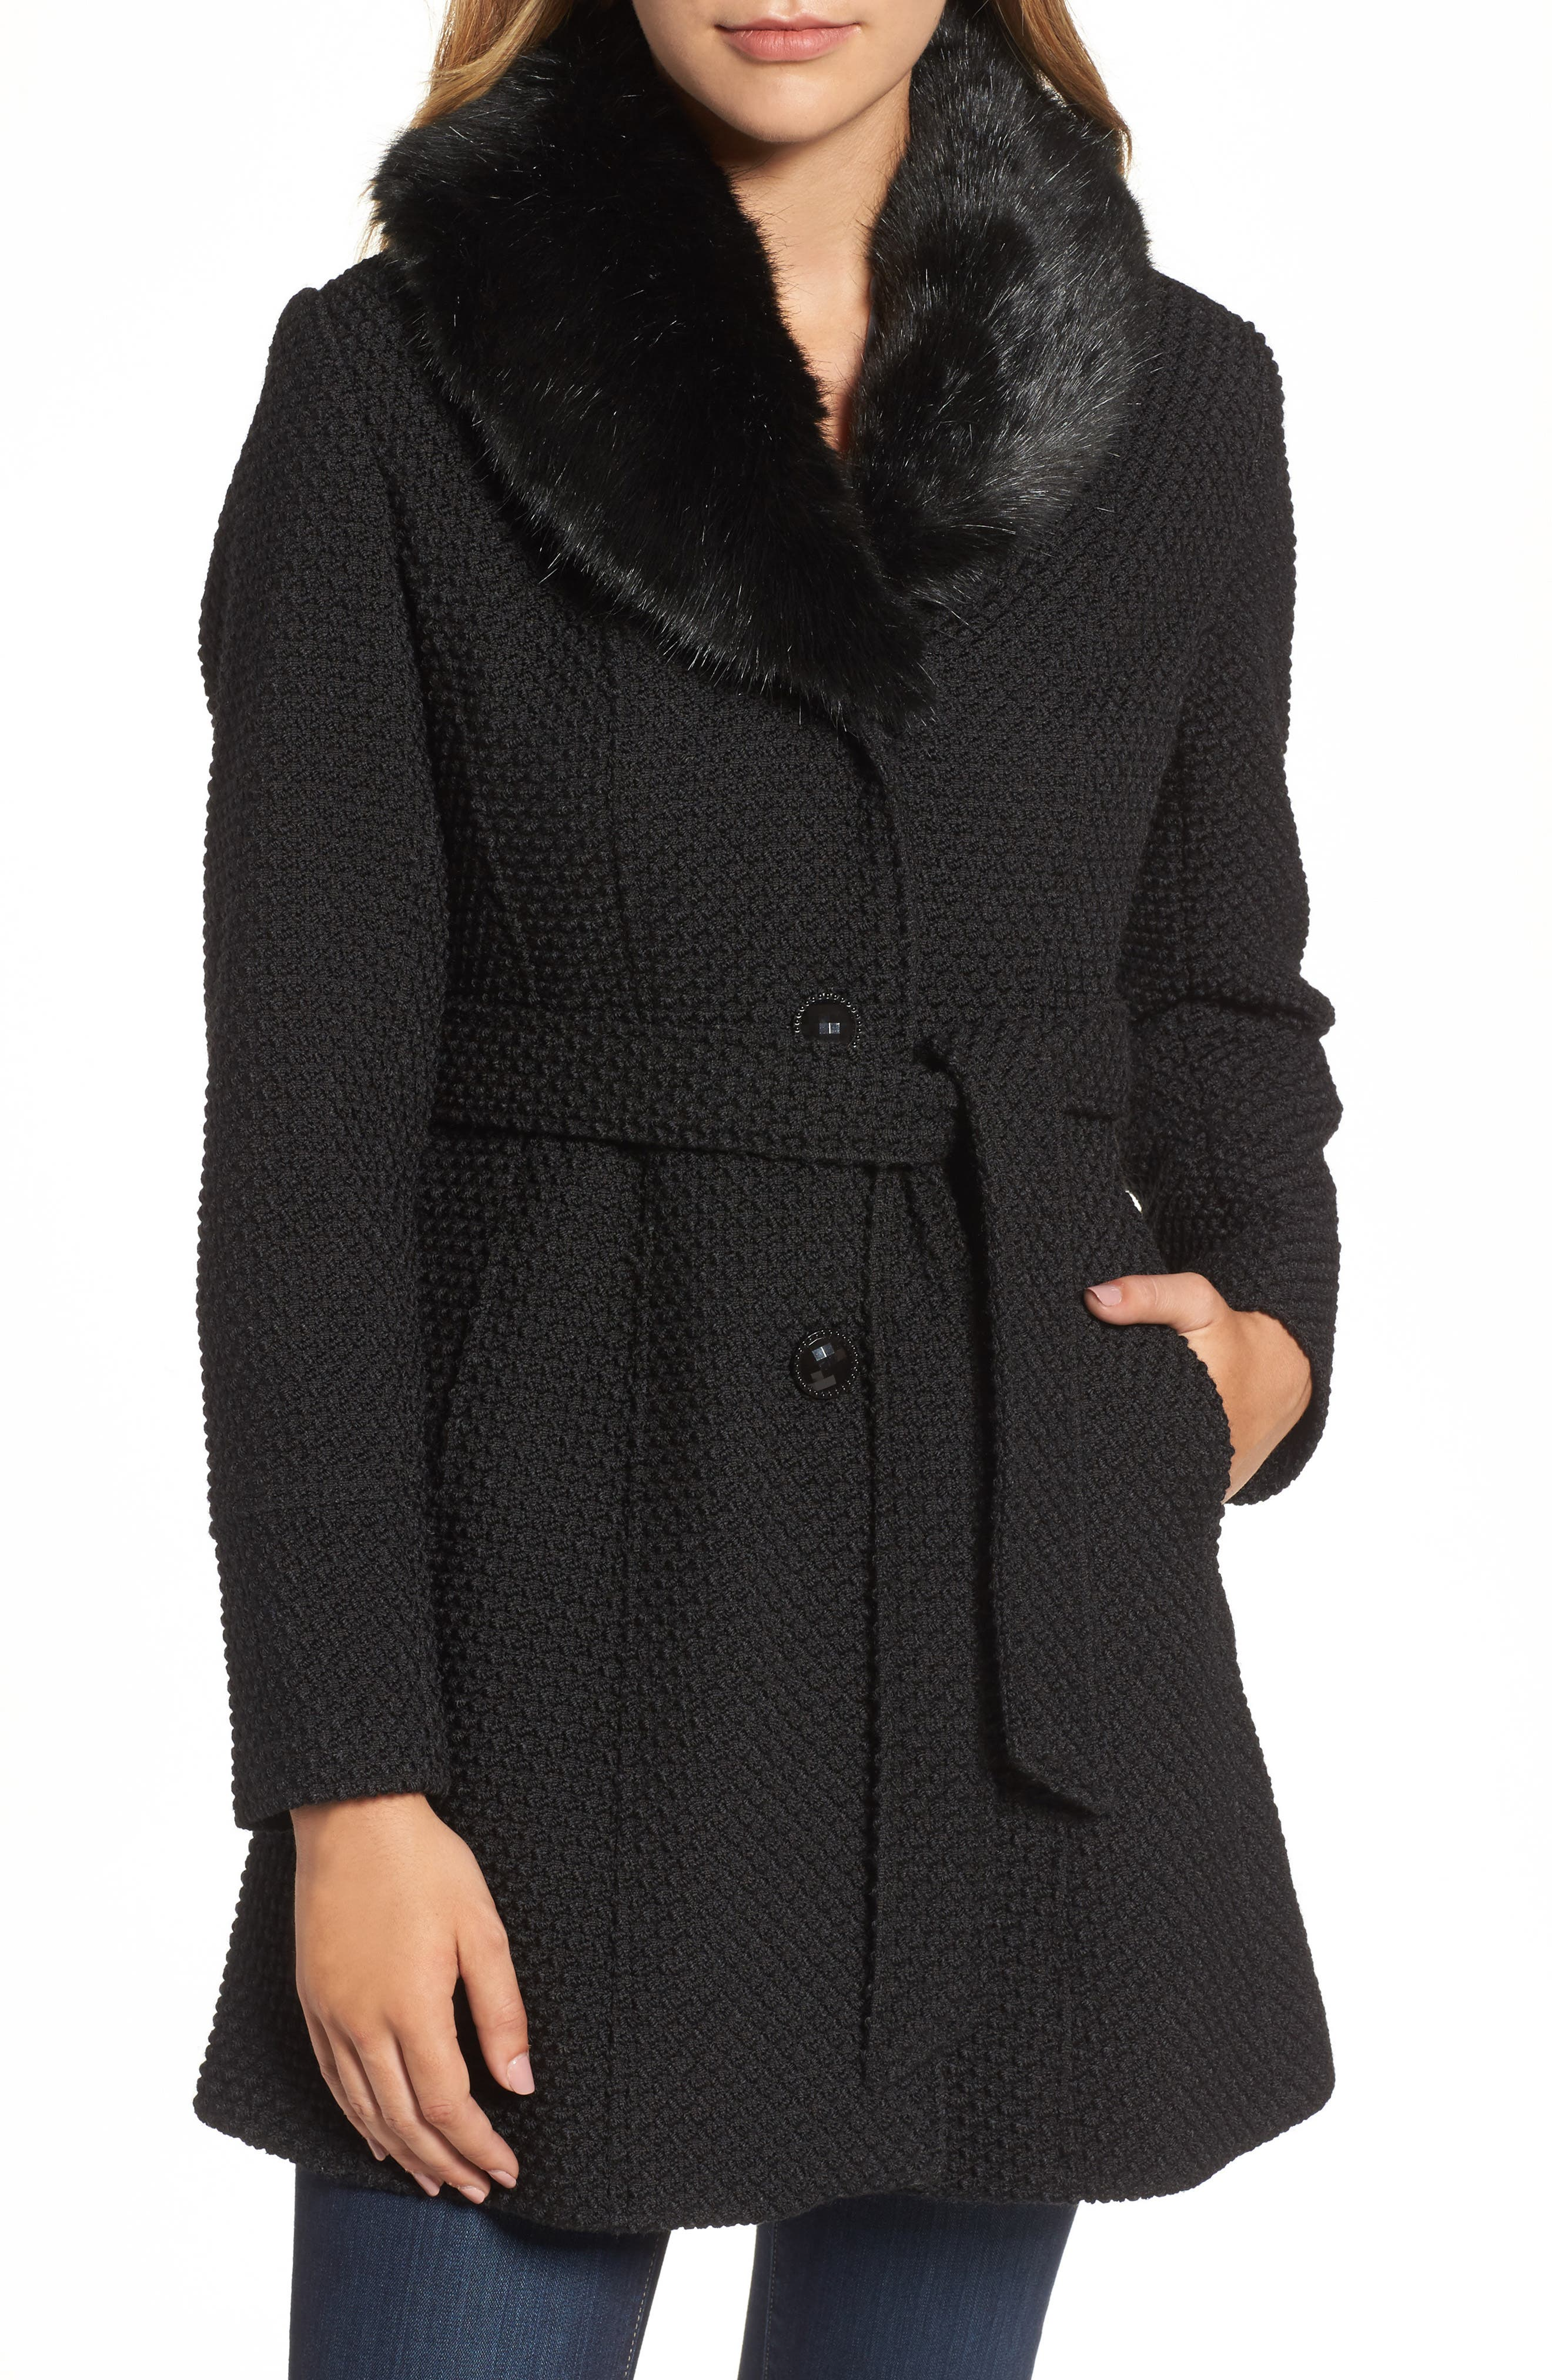 Belted Coat with Faux Fur Collar,                         Main,                         color, 001